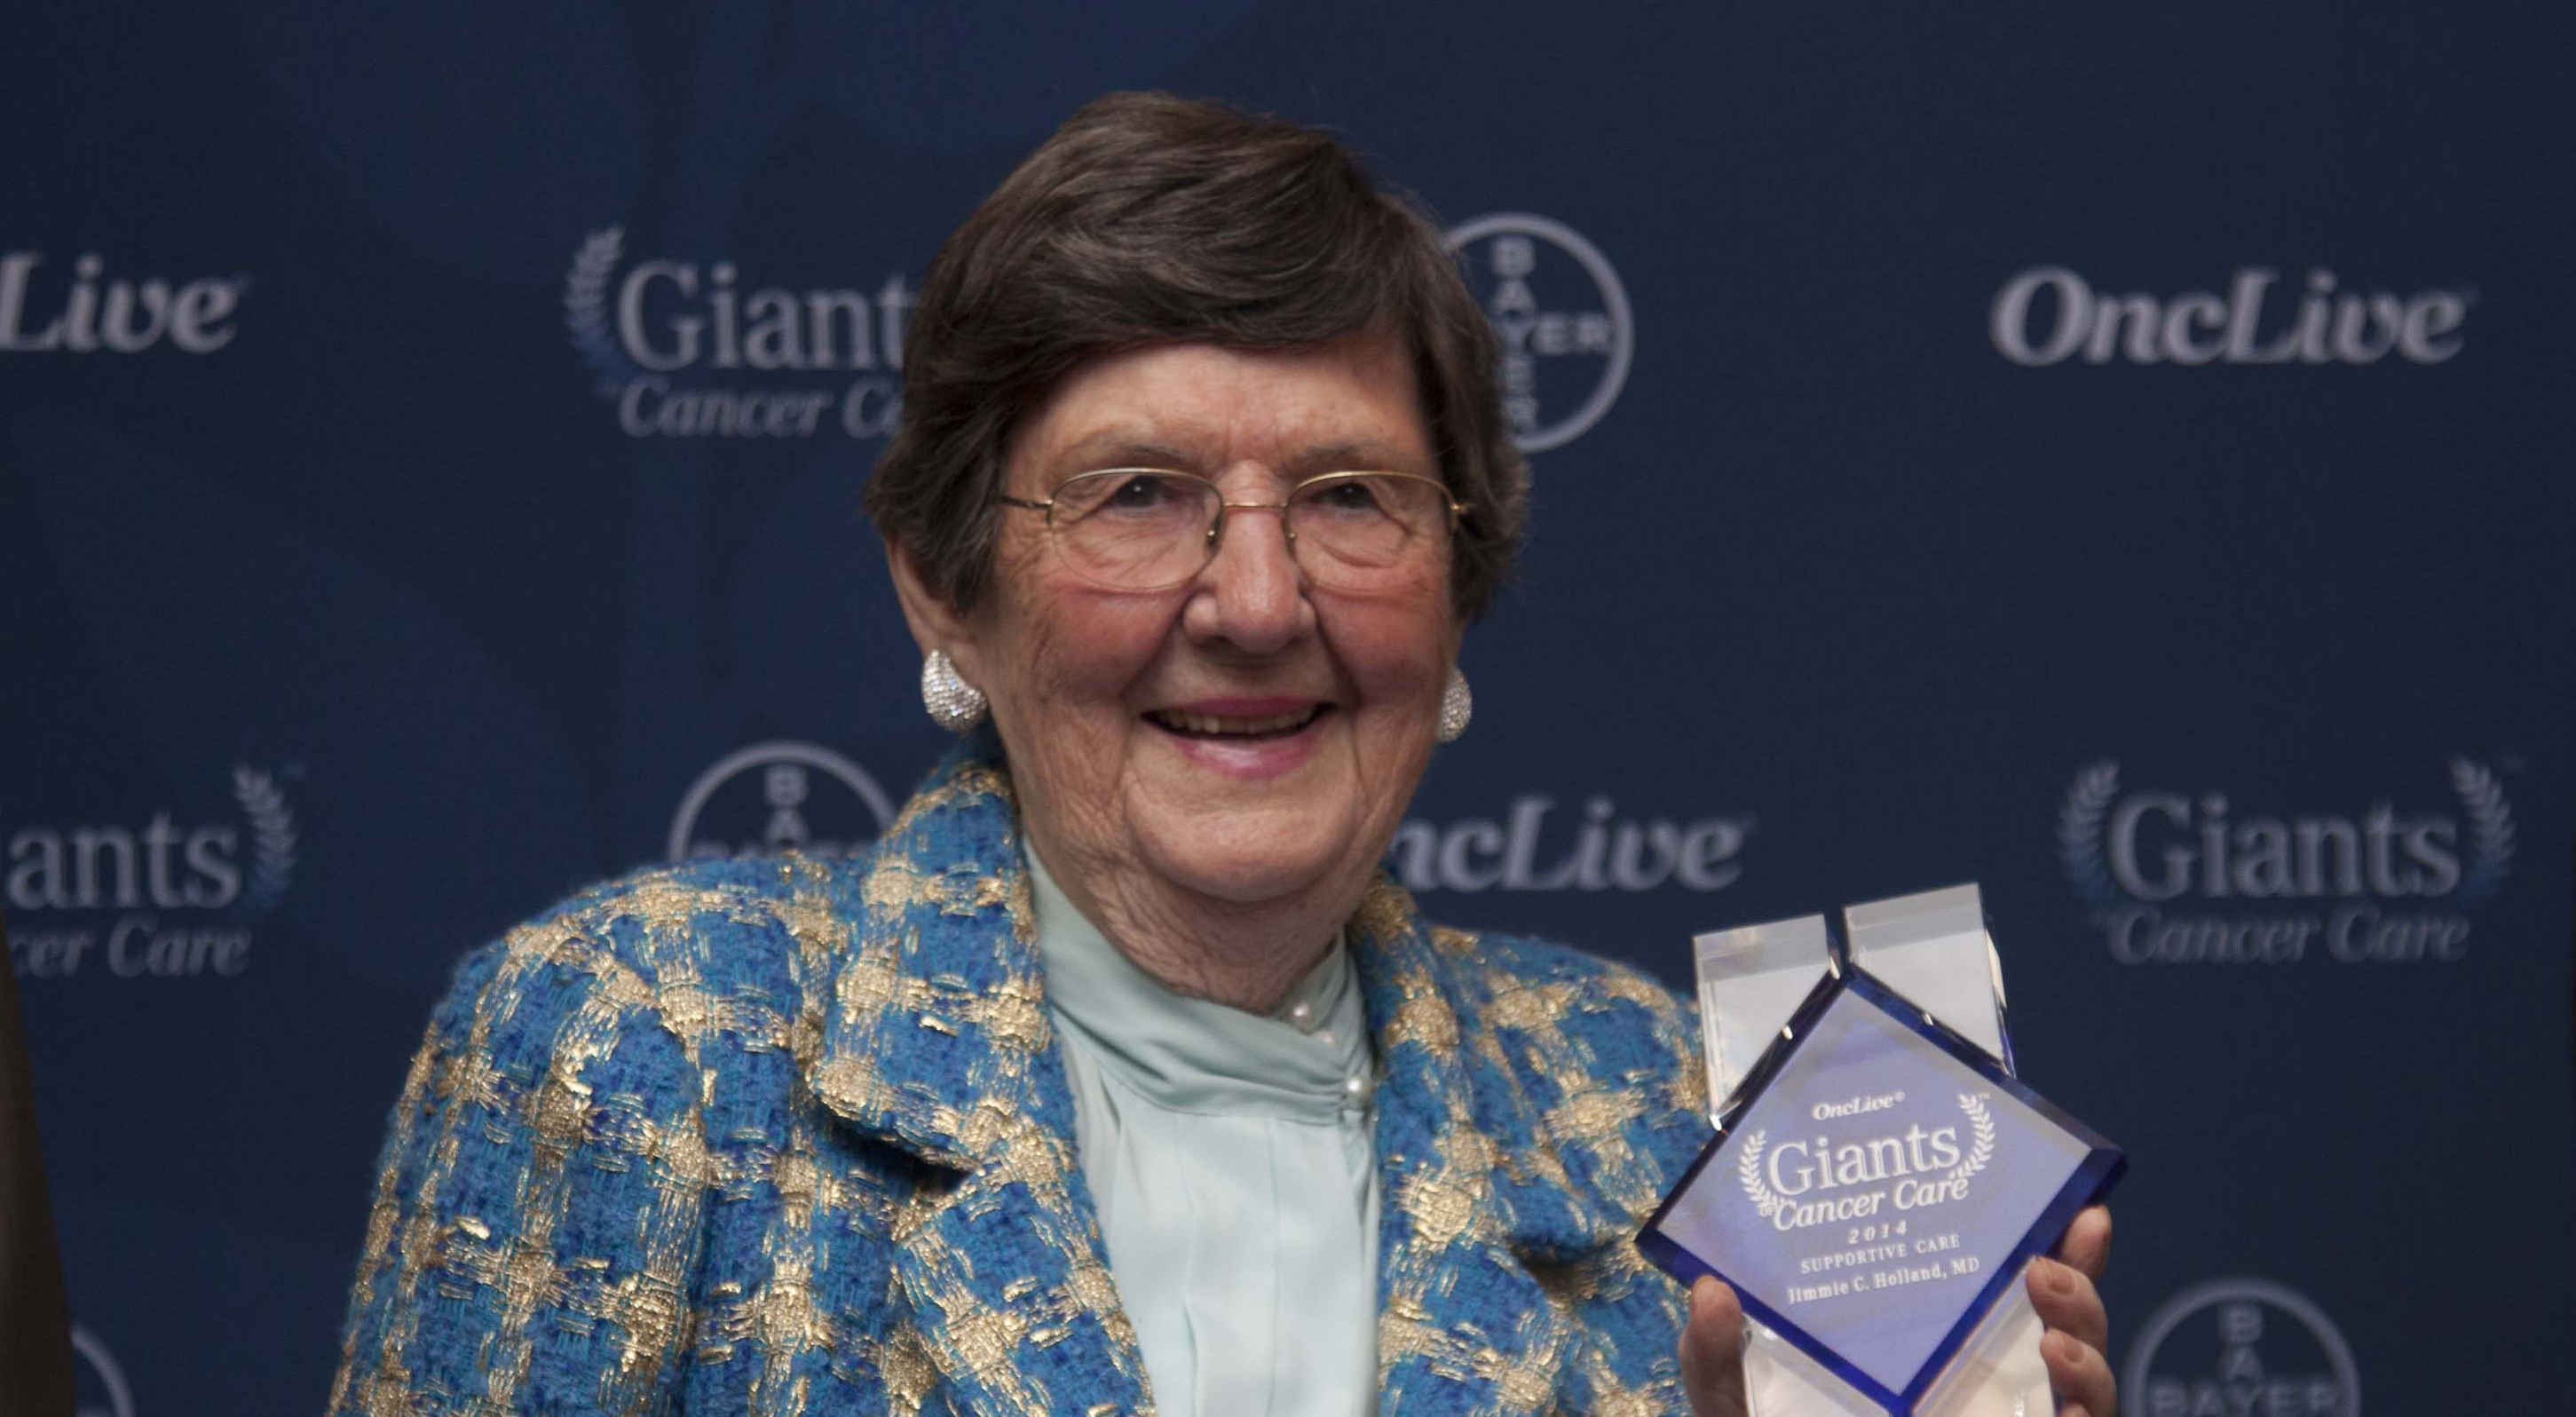 Holland receiving the Giants of Cancer Care award in 2014.